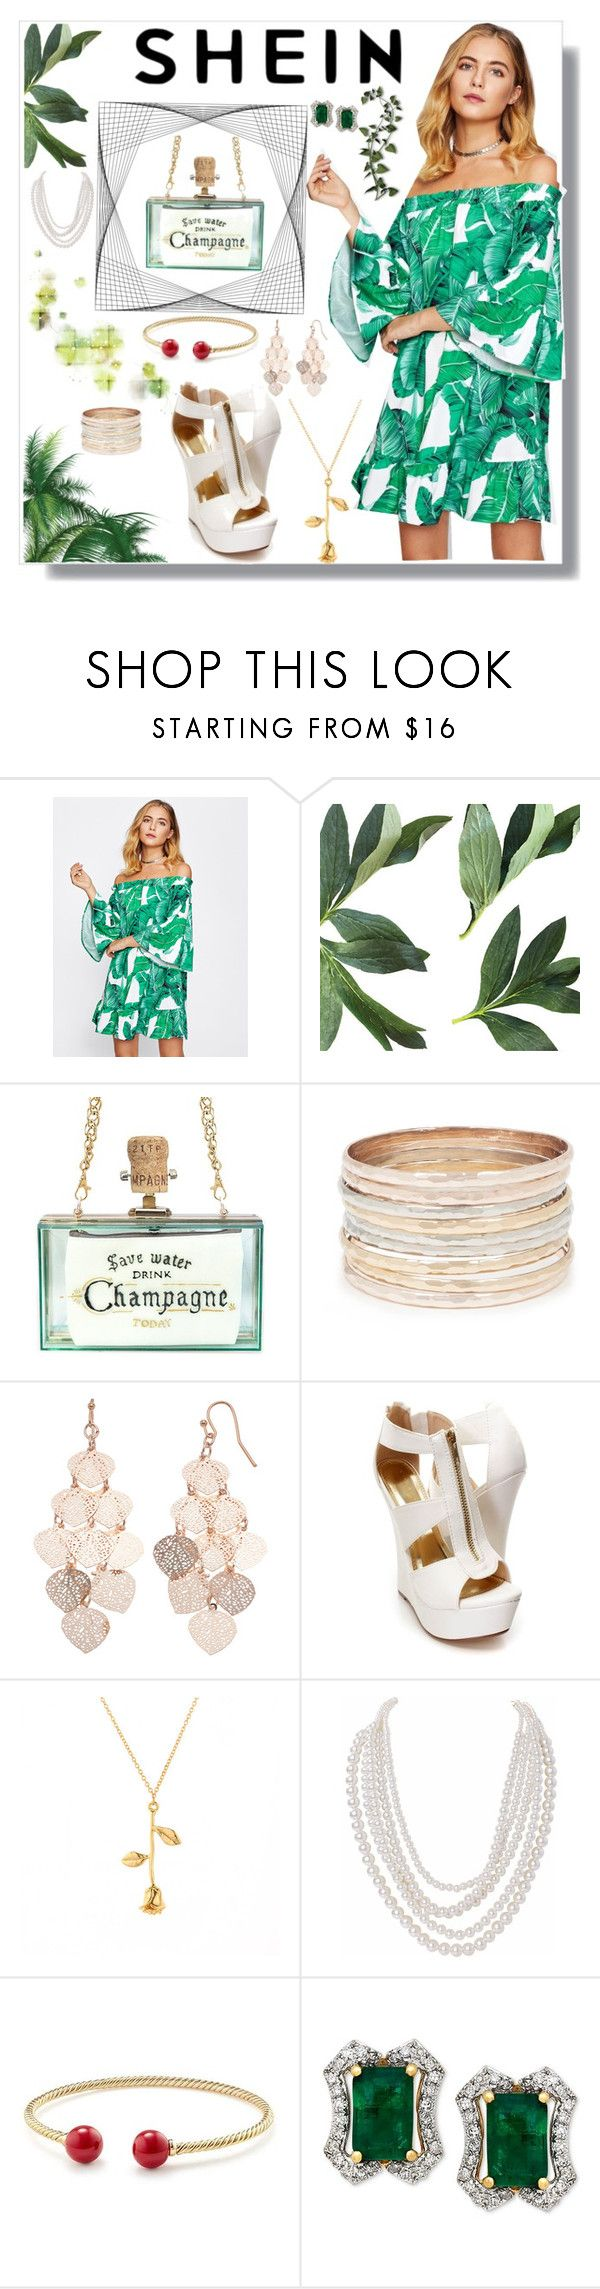 """""""Shein"""" by eldinreham on Polyvore featuring LC Lauren Conrad, Humble Chic and David Yurman"""